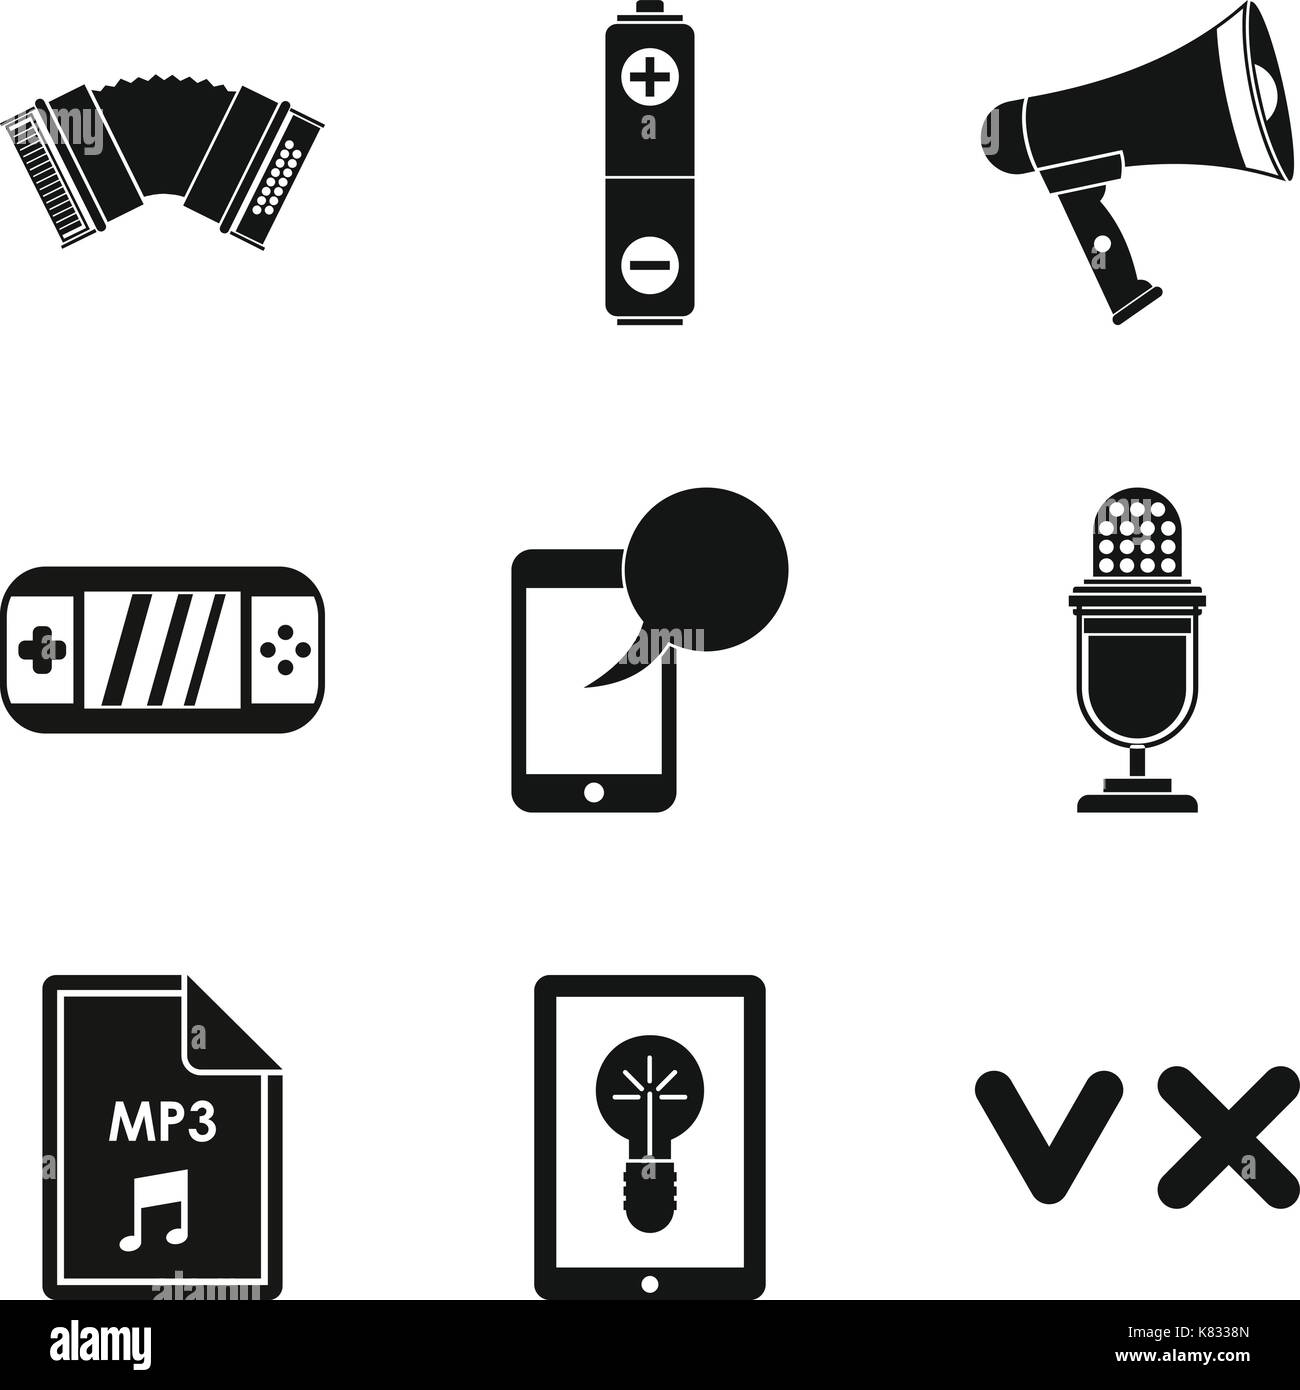 Music genre icons set, simple style - Stock Image